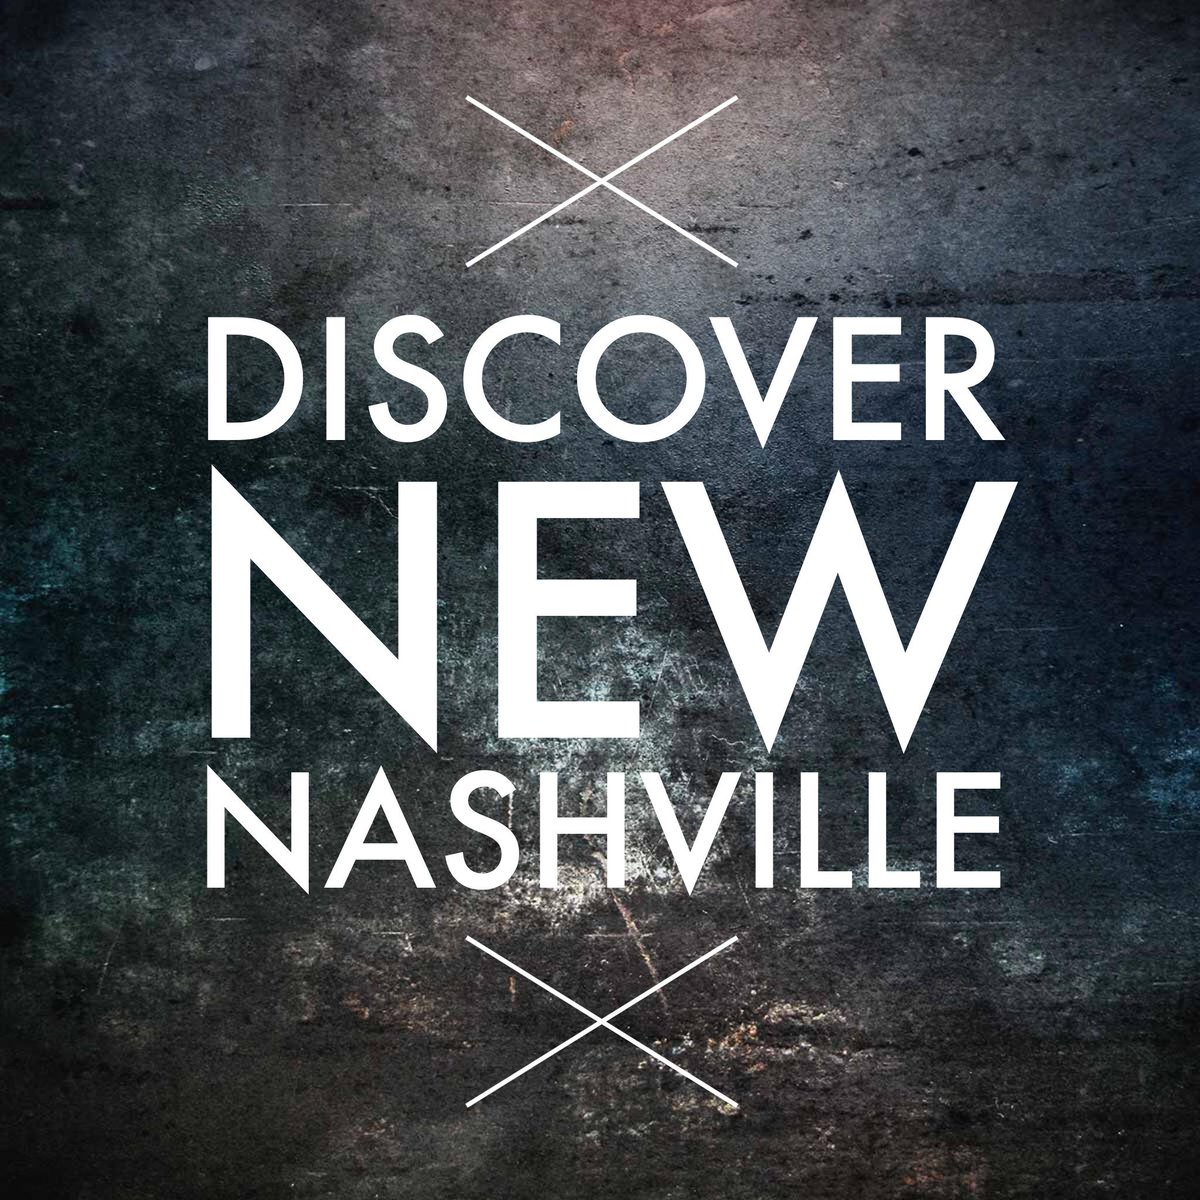 We made a playlist of some of the best acts in Nashville you may not know! Give it a listen: http://t.co/rHhi1y88B1 http://t.co/nrmlH8CkNG